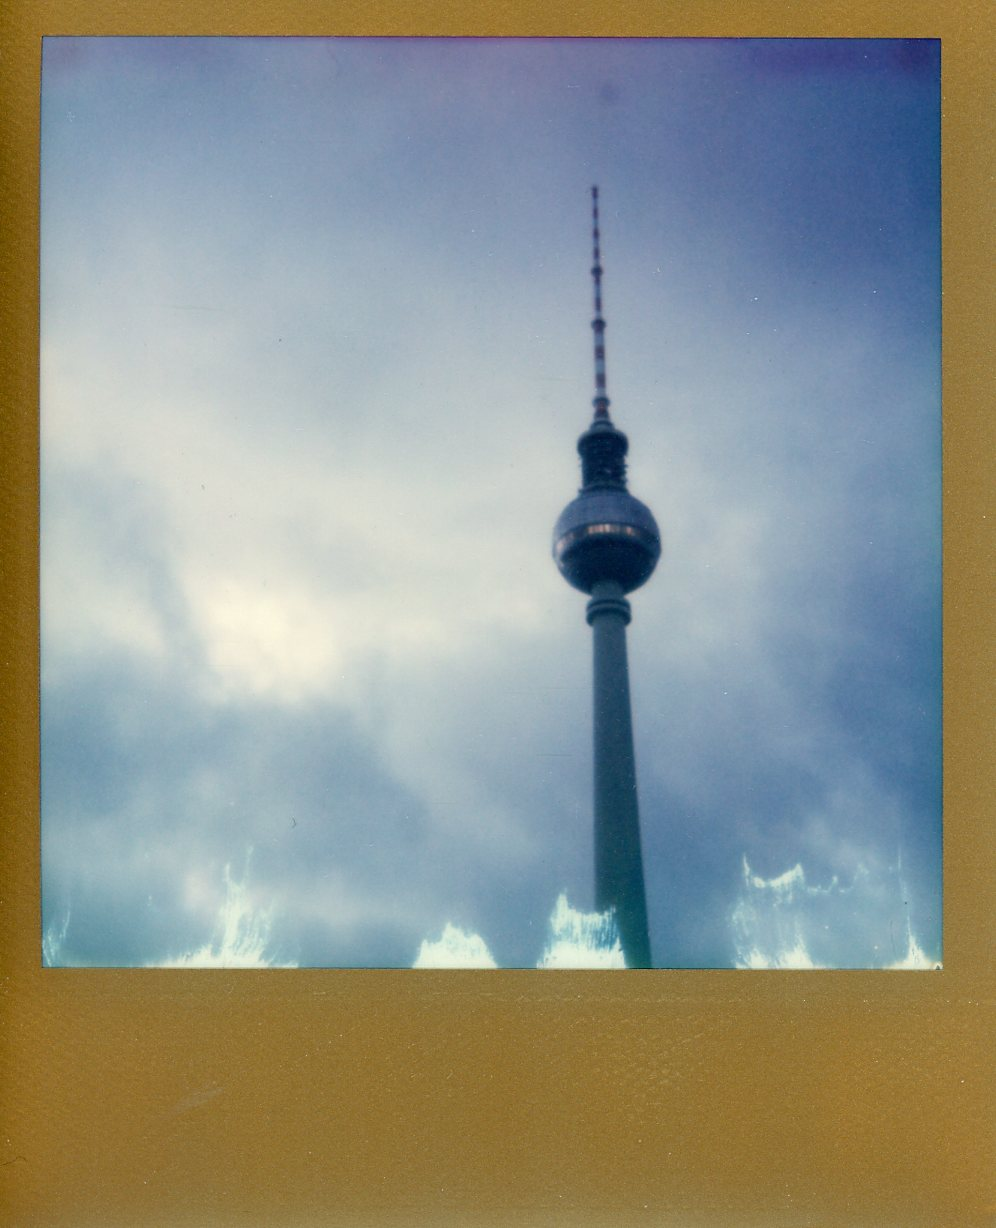 Berlin_Polaroid004.jpg